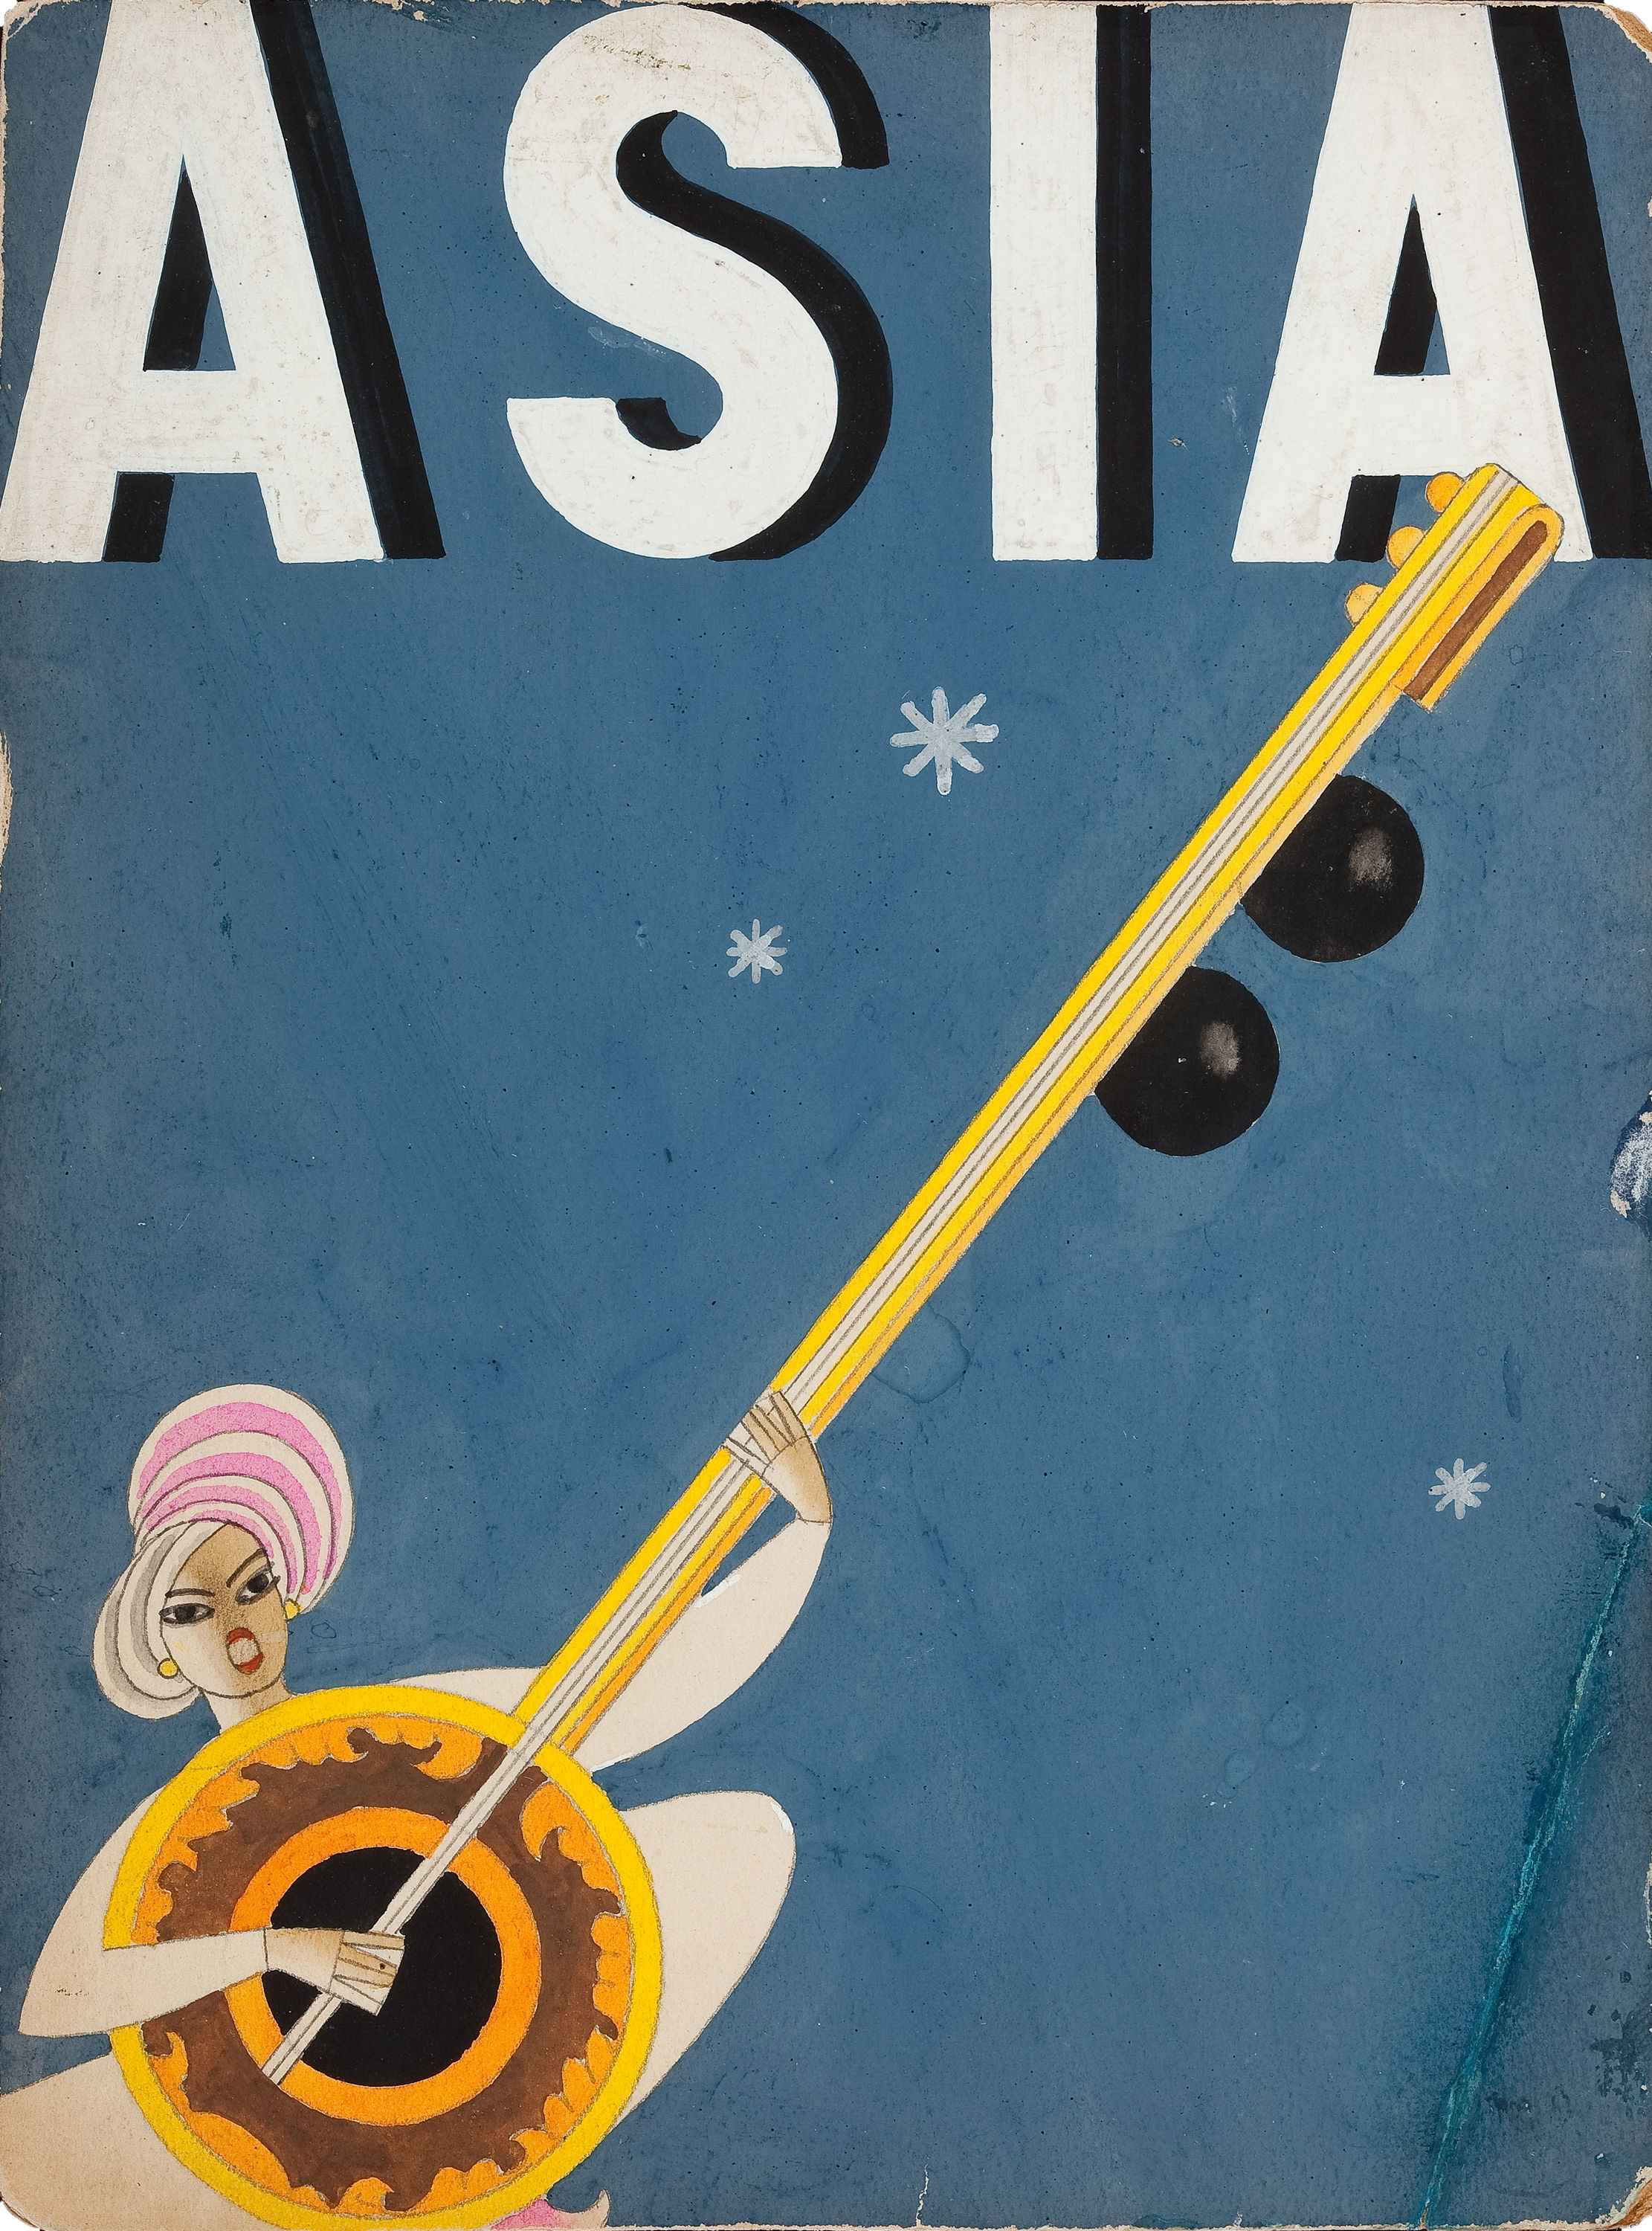 FRANK McINTOSH (American, b. 1901). Asia magazine cover, December 1933. Gouache, watercolor, and pencil on board.